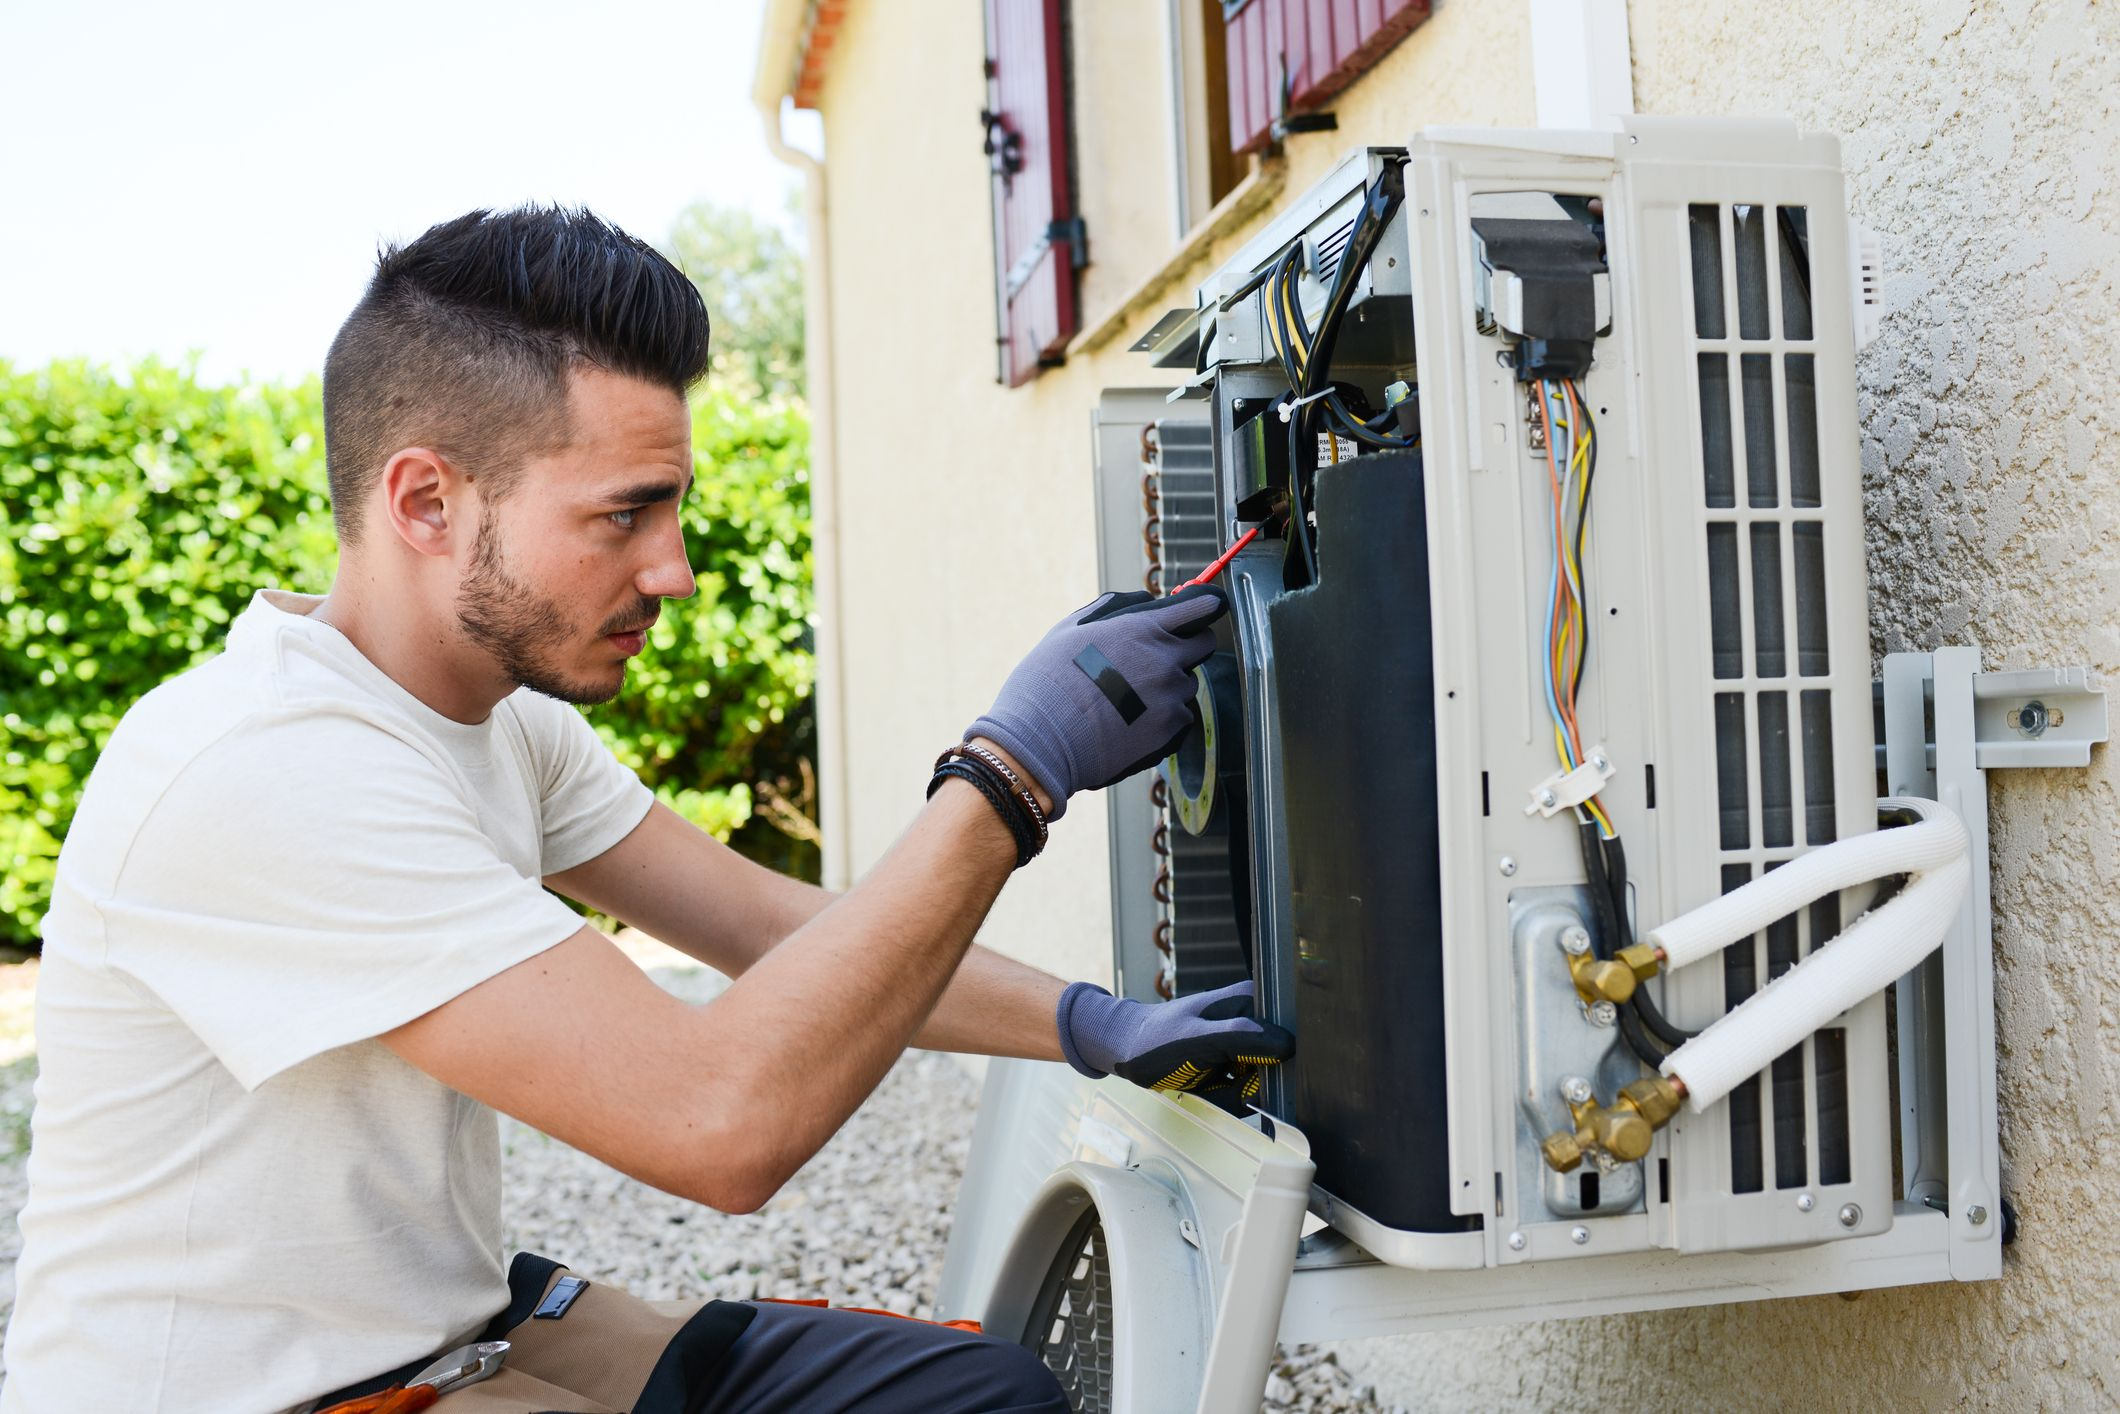 What Is an Energy Star Verified HVAC Installation? - Modernize | Hvac installation, Ac repair, Hvac repair